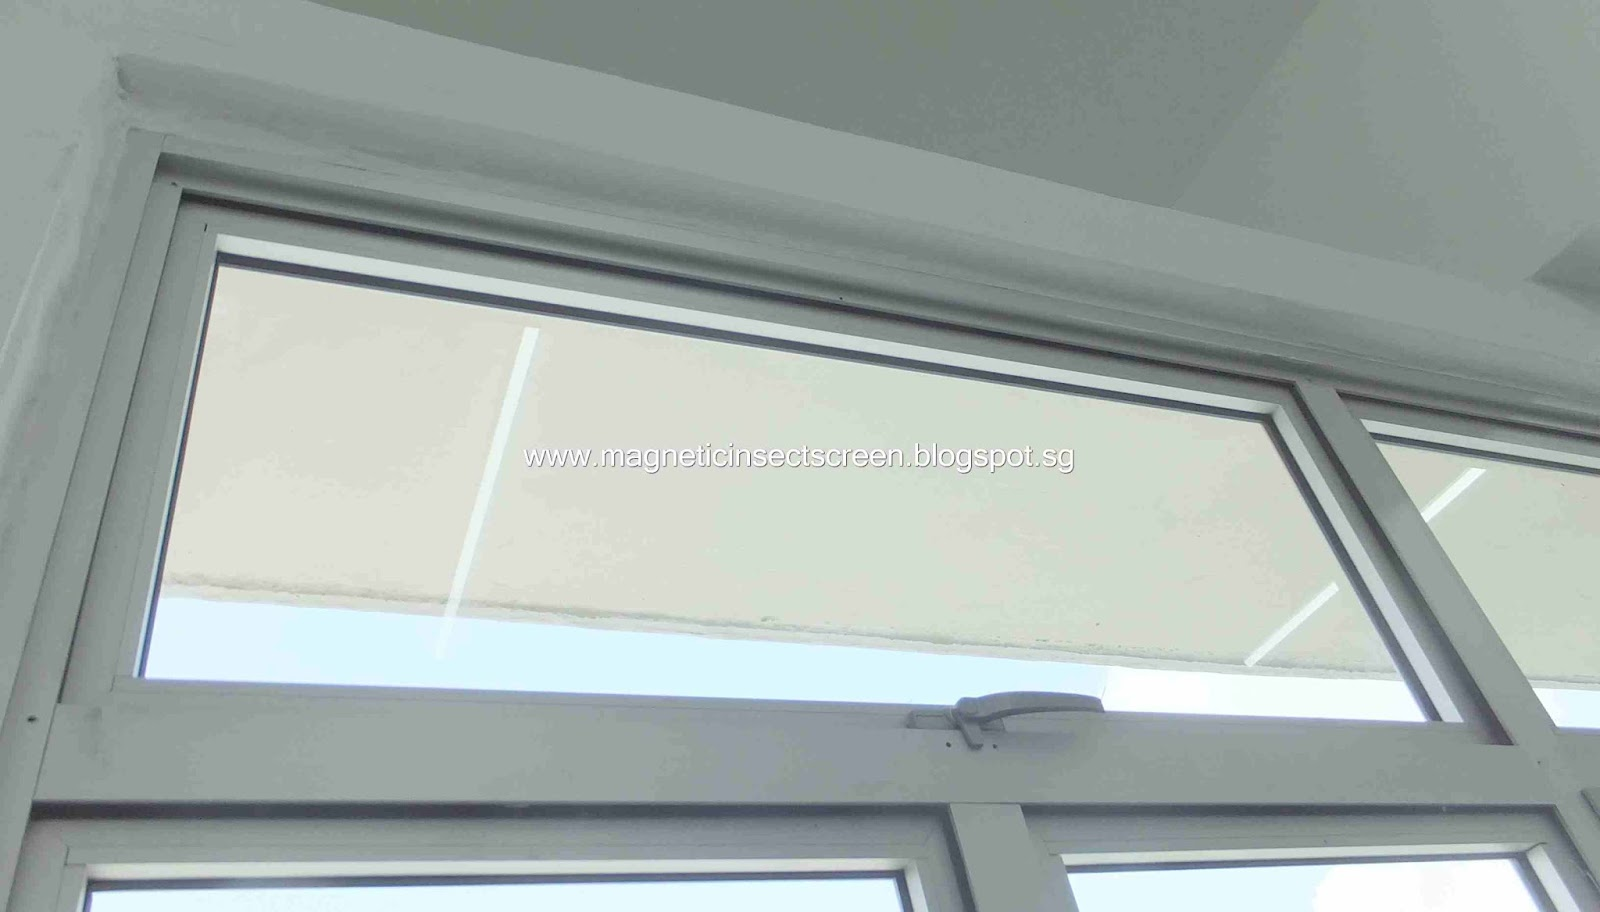 Diy Mosquito Net For Windows Diy Magnetic Insect Screen Singapore Windows With